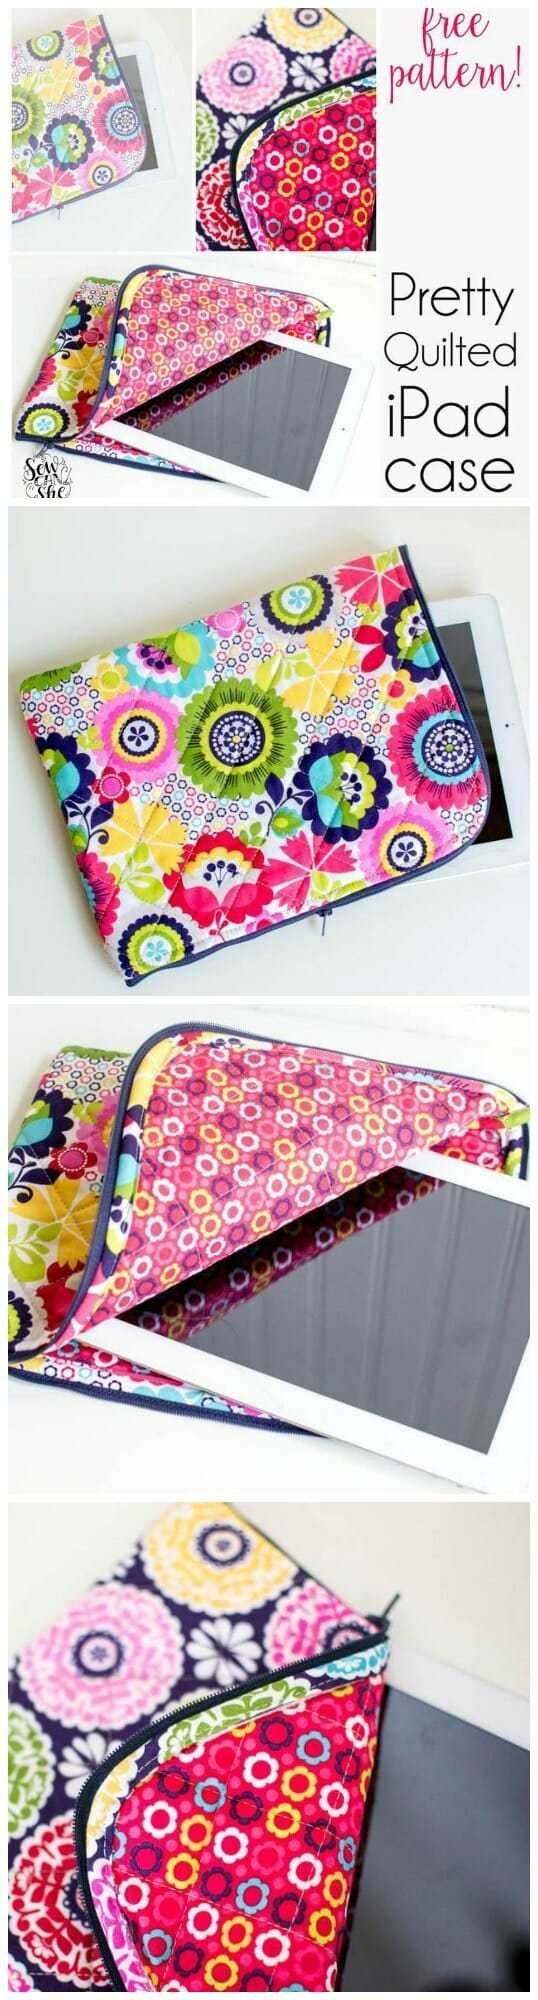 Pretty quilted IPad case free pattern Sewing patterns